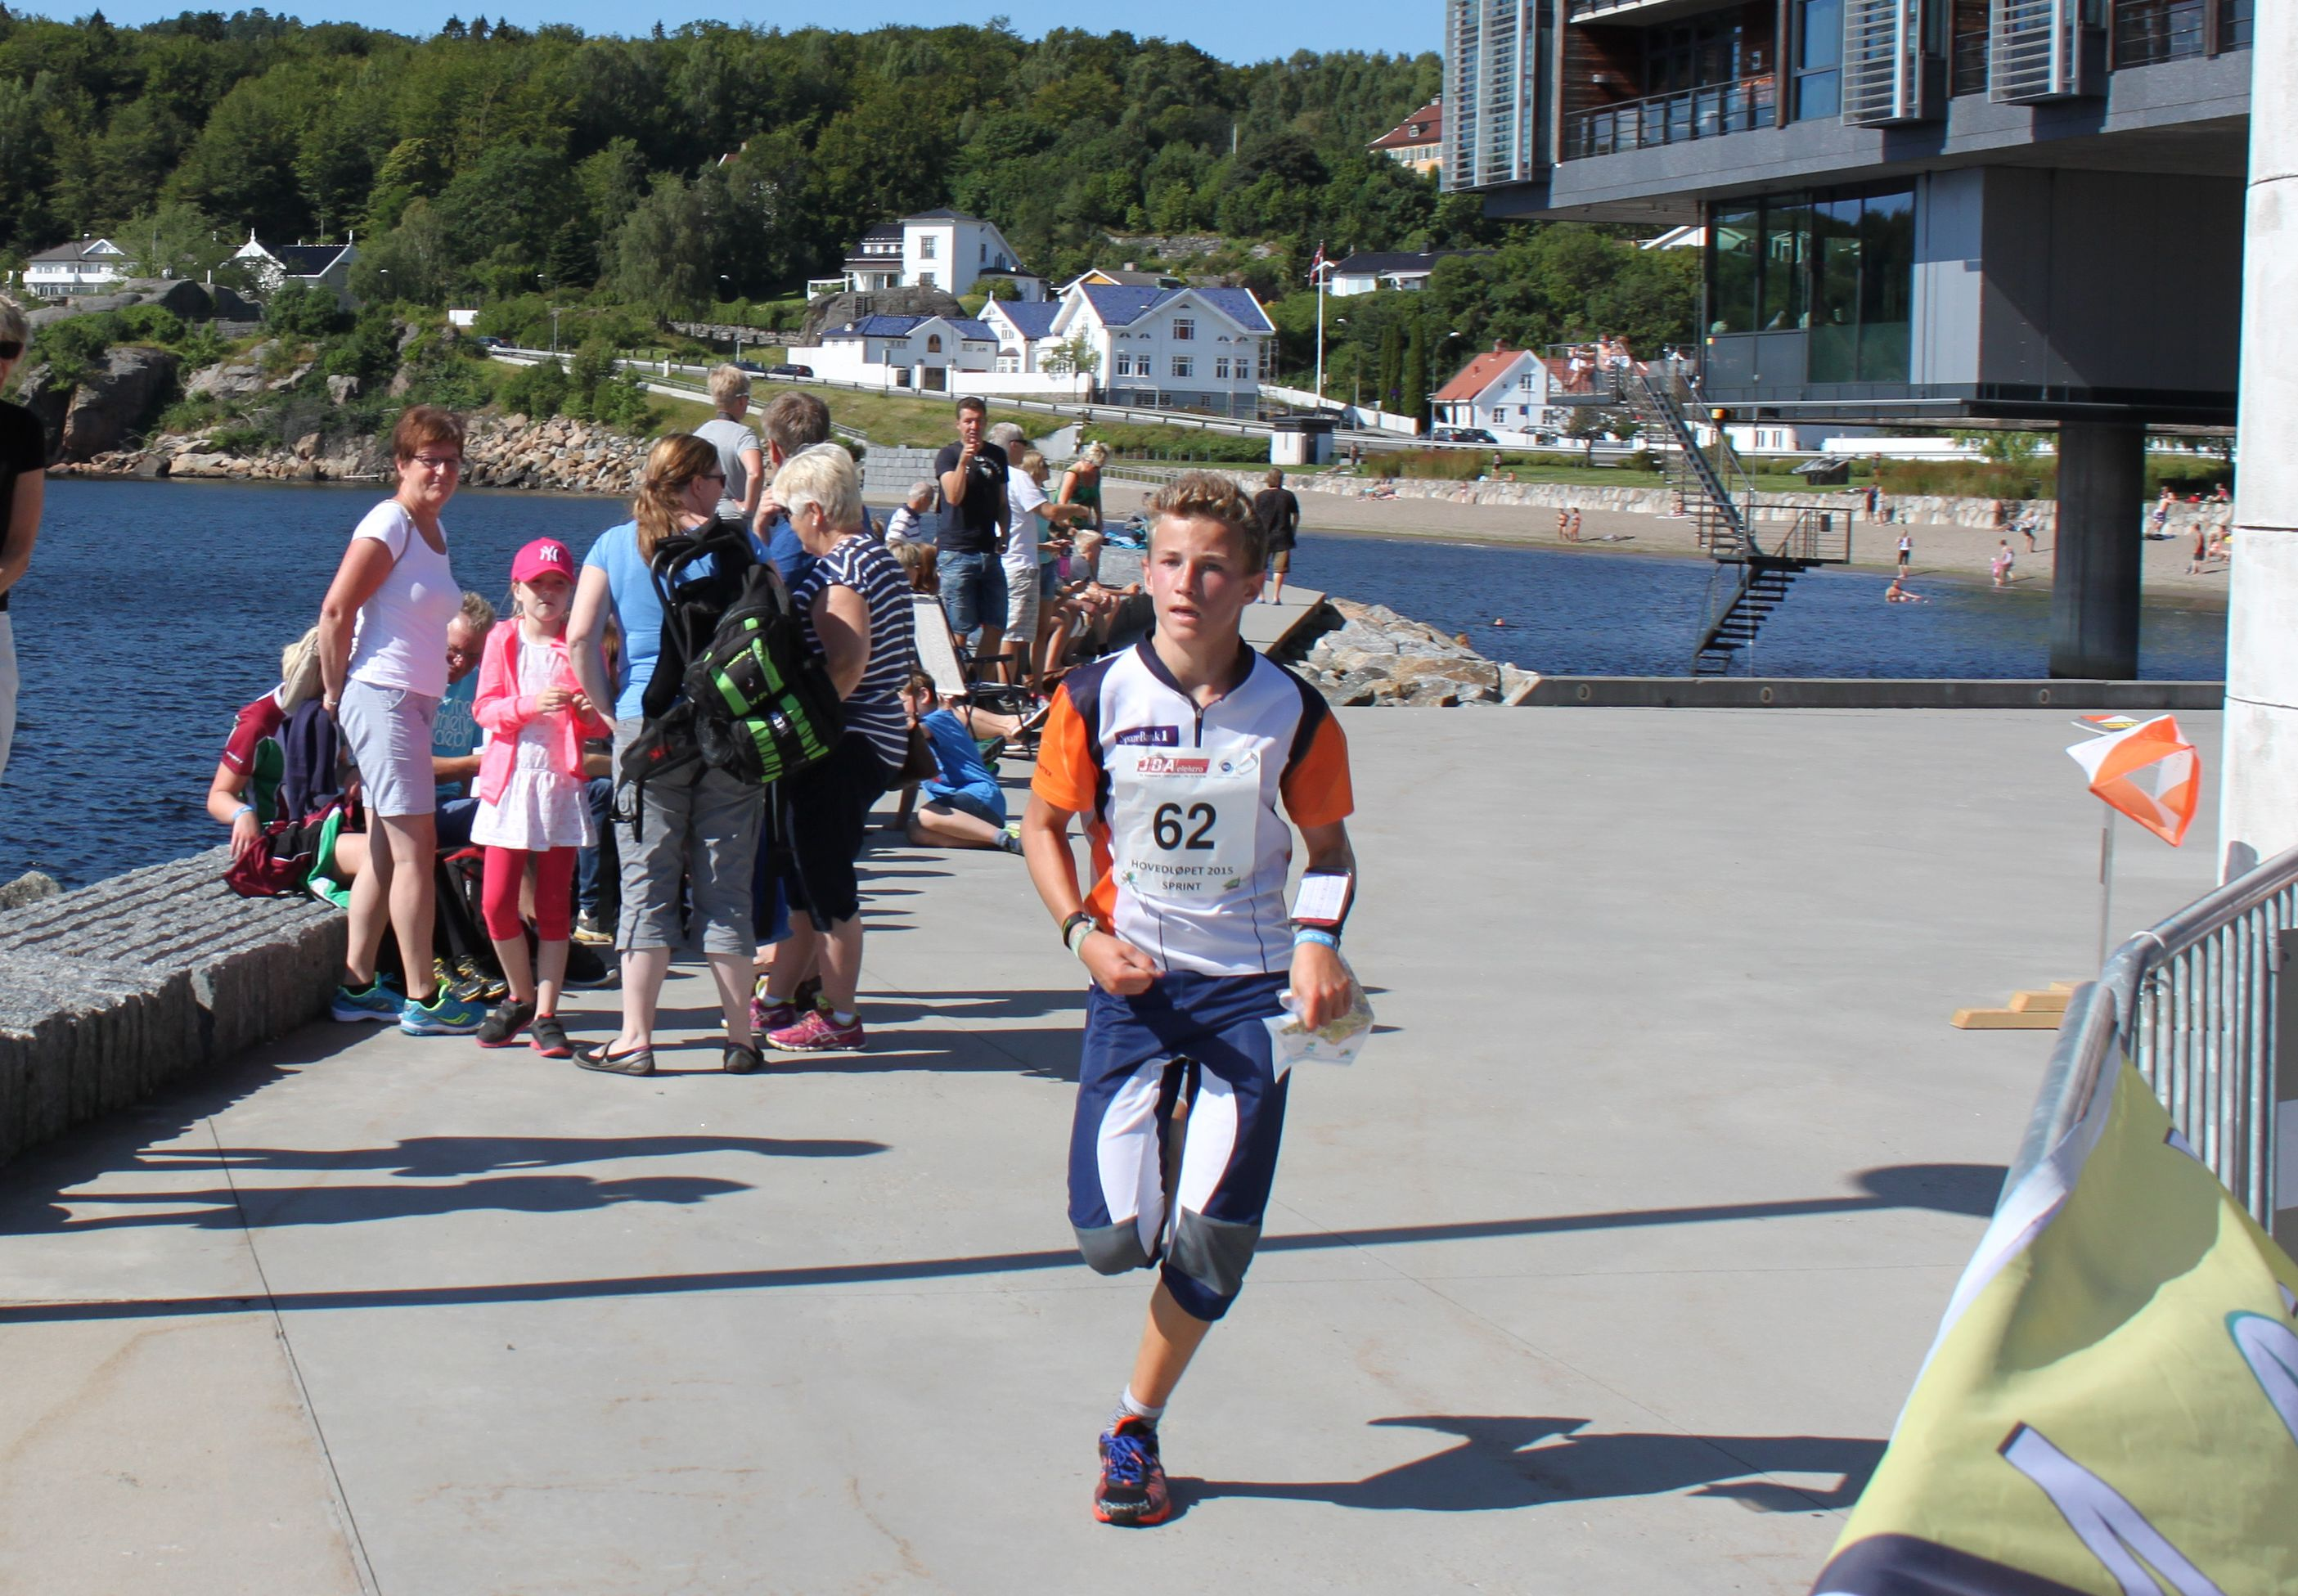 anders_hlsprint2015